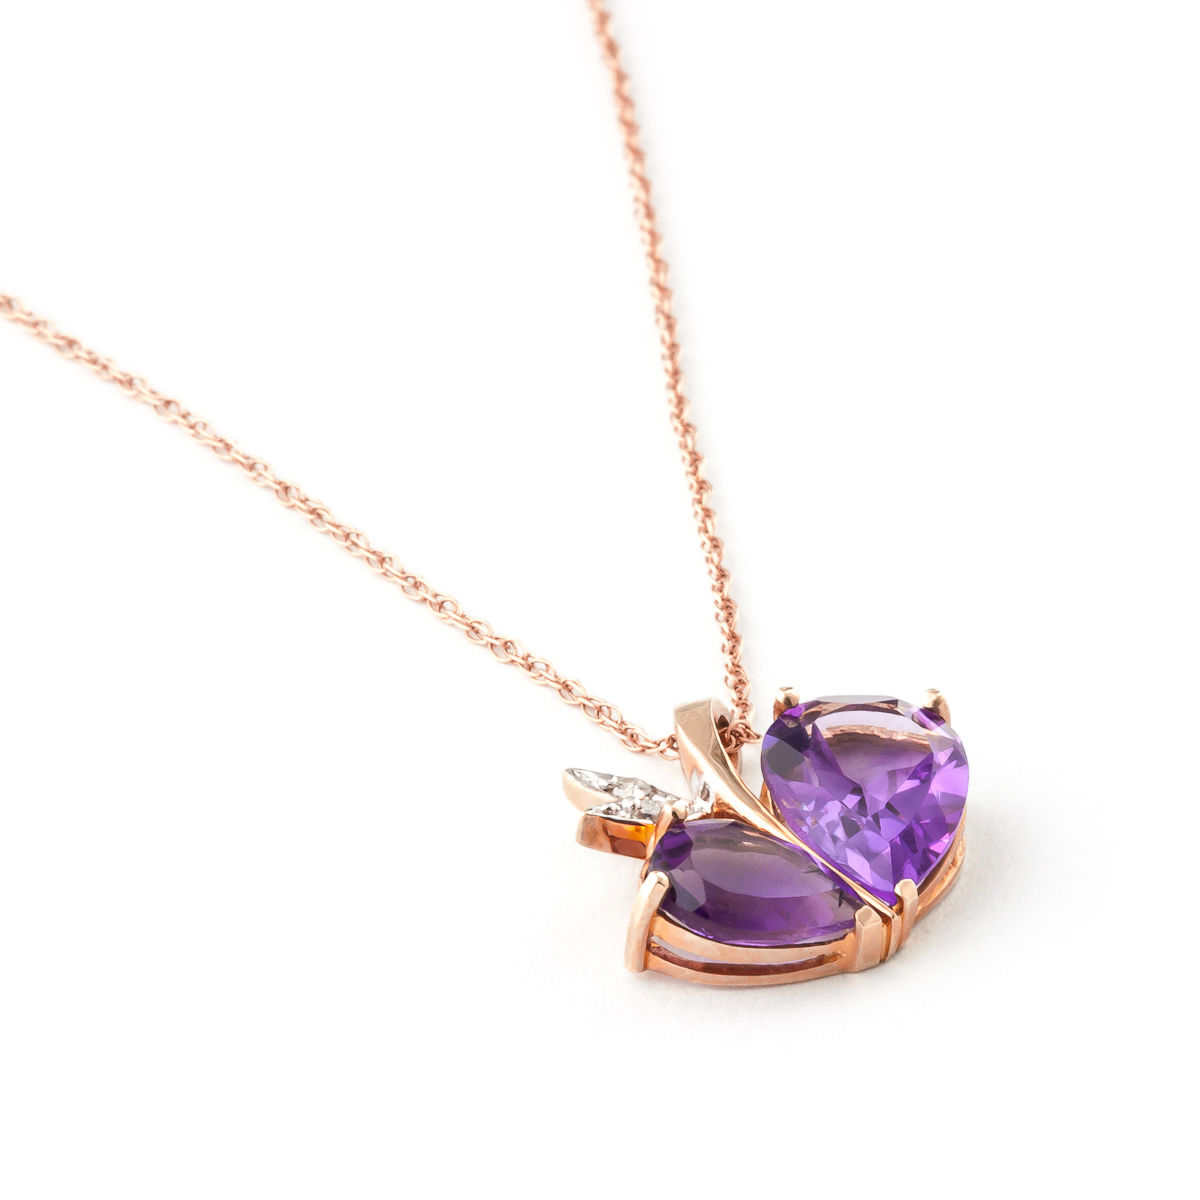 Amethyst and Diamond Eternal Pendant Necklace 4.0ctw in 9ct Rose Gold